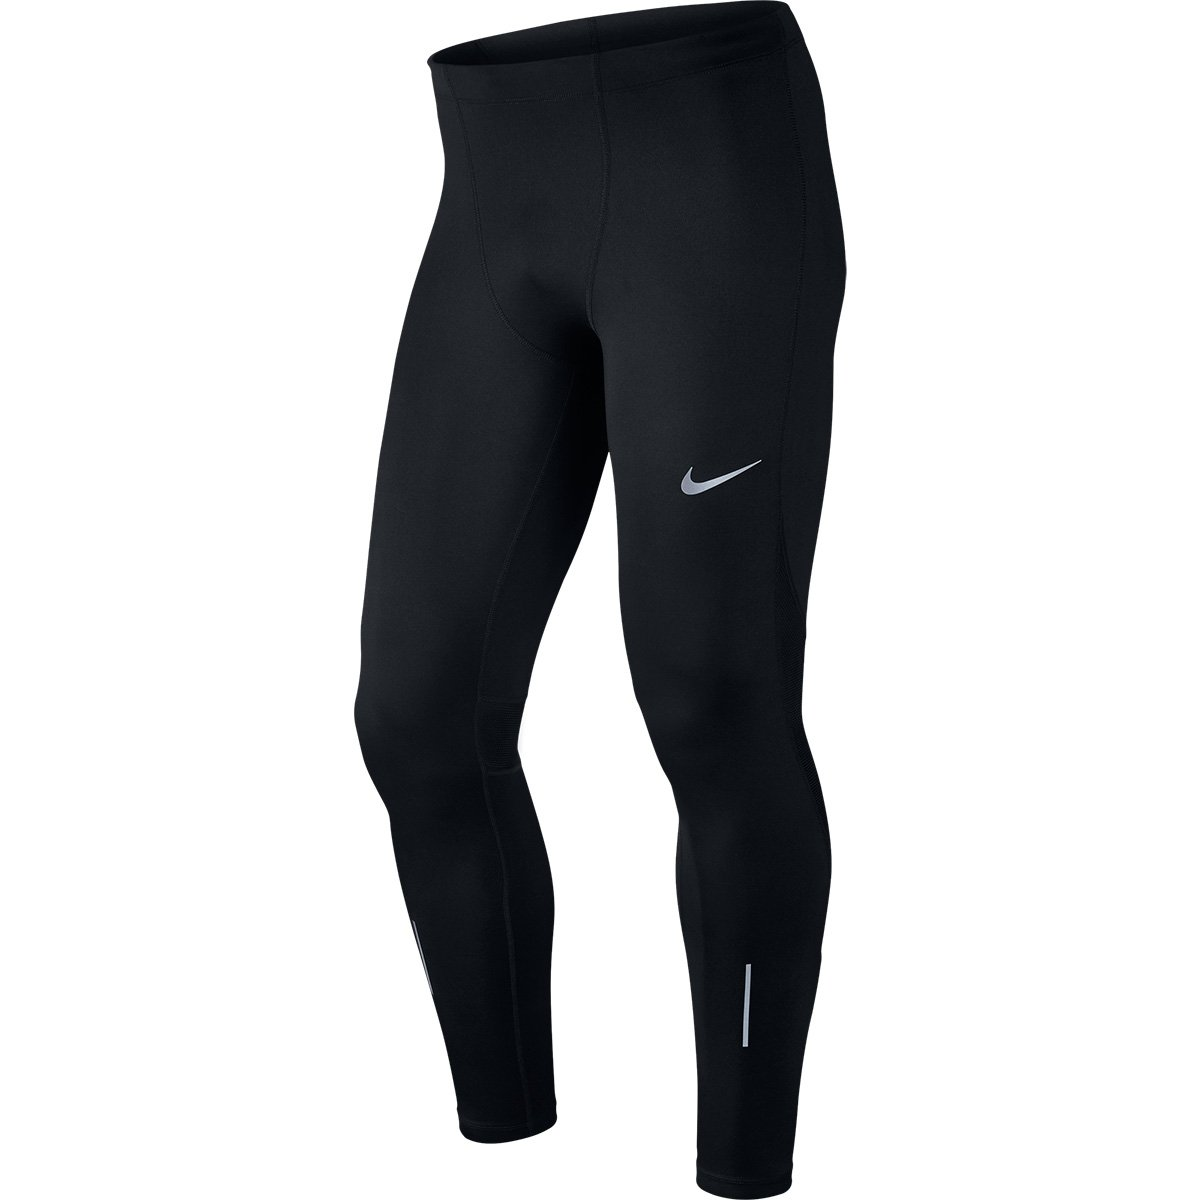 c6aebf4860 Calça Nike Power Run TGHT Dri-Fit Masculina